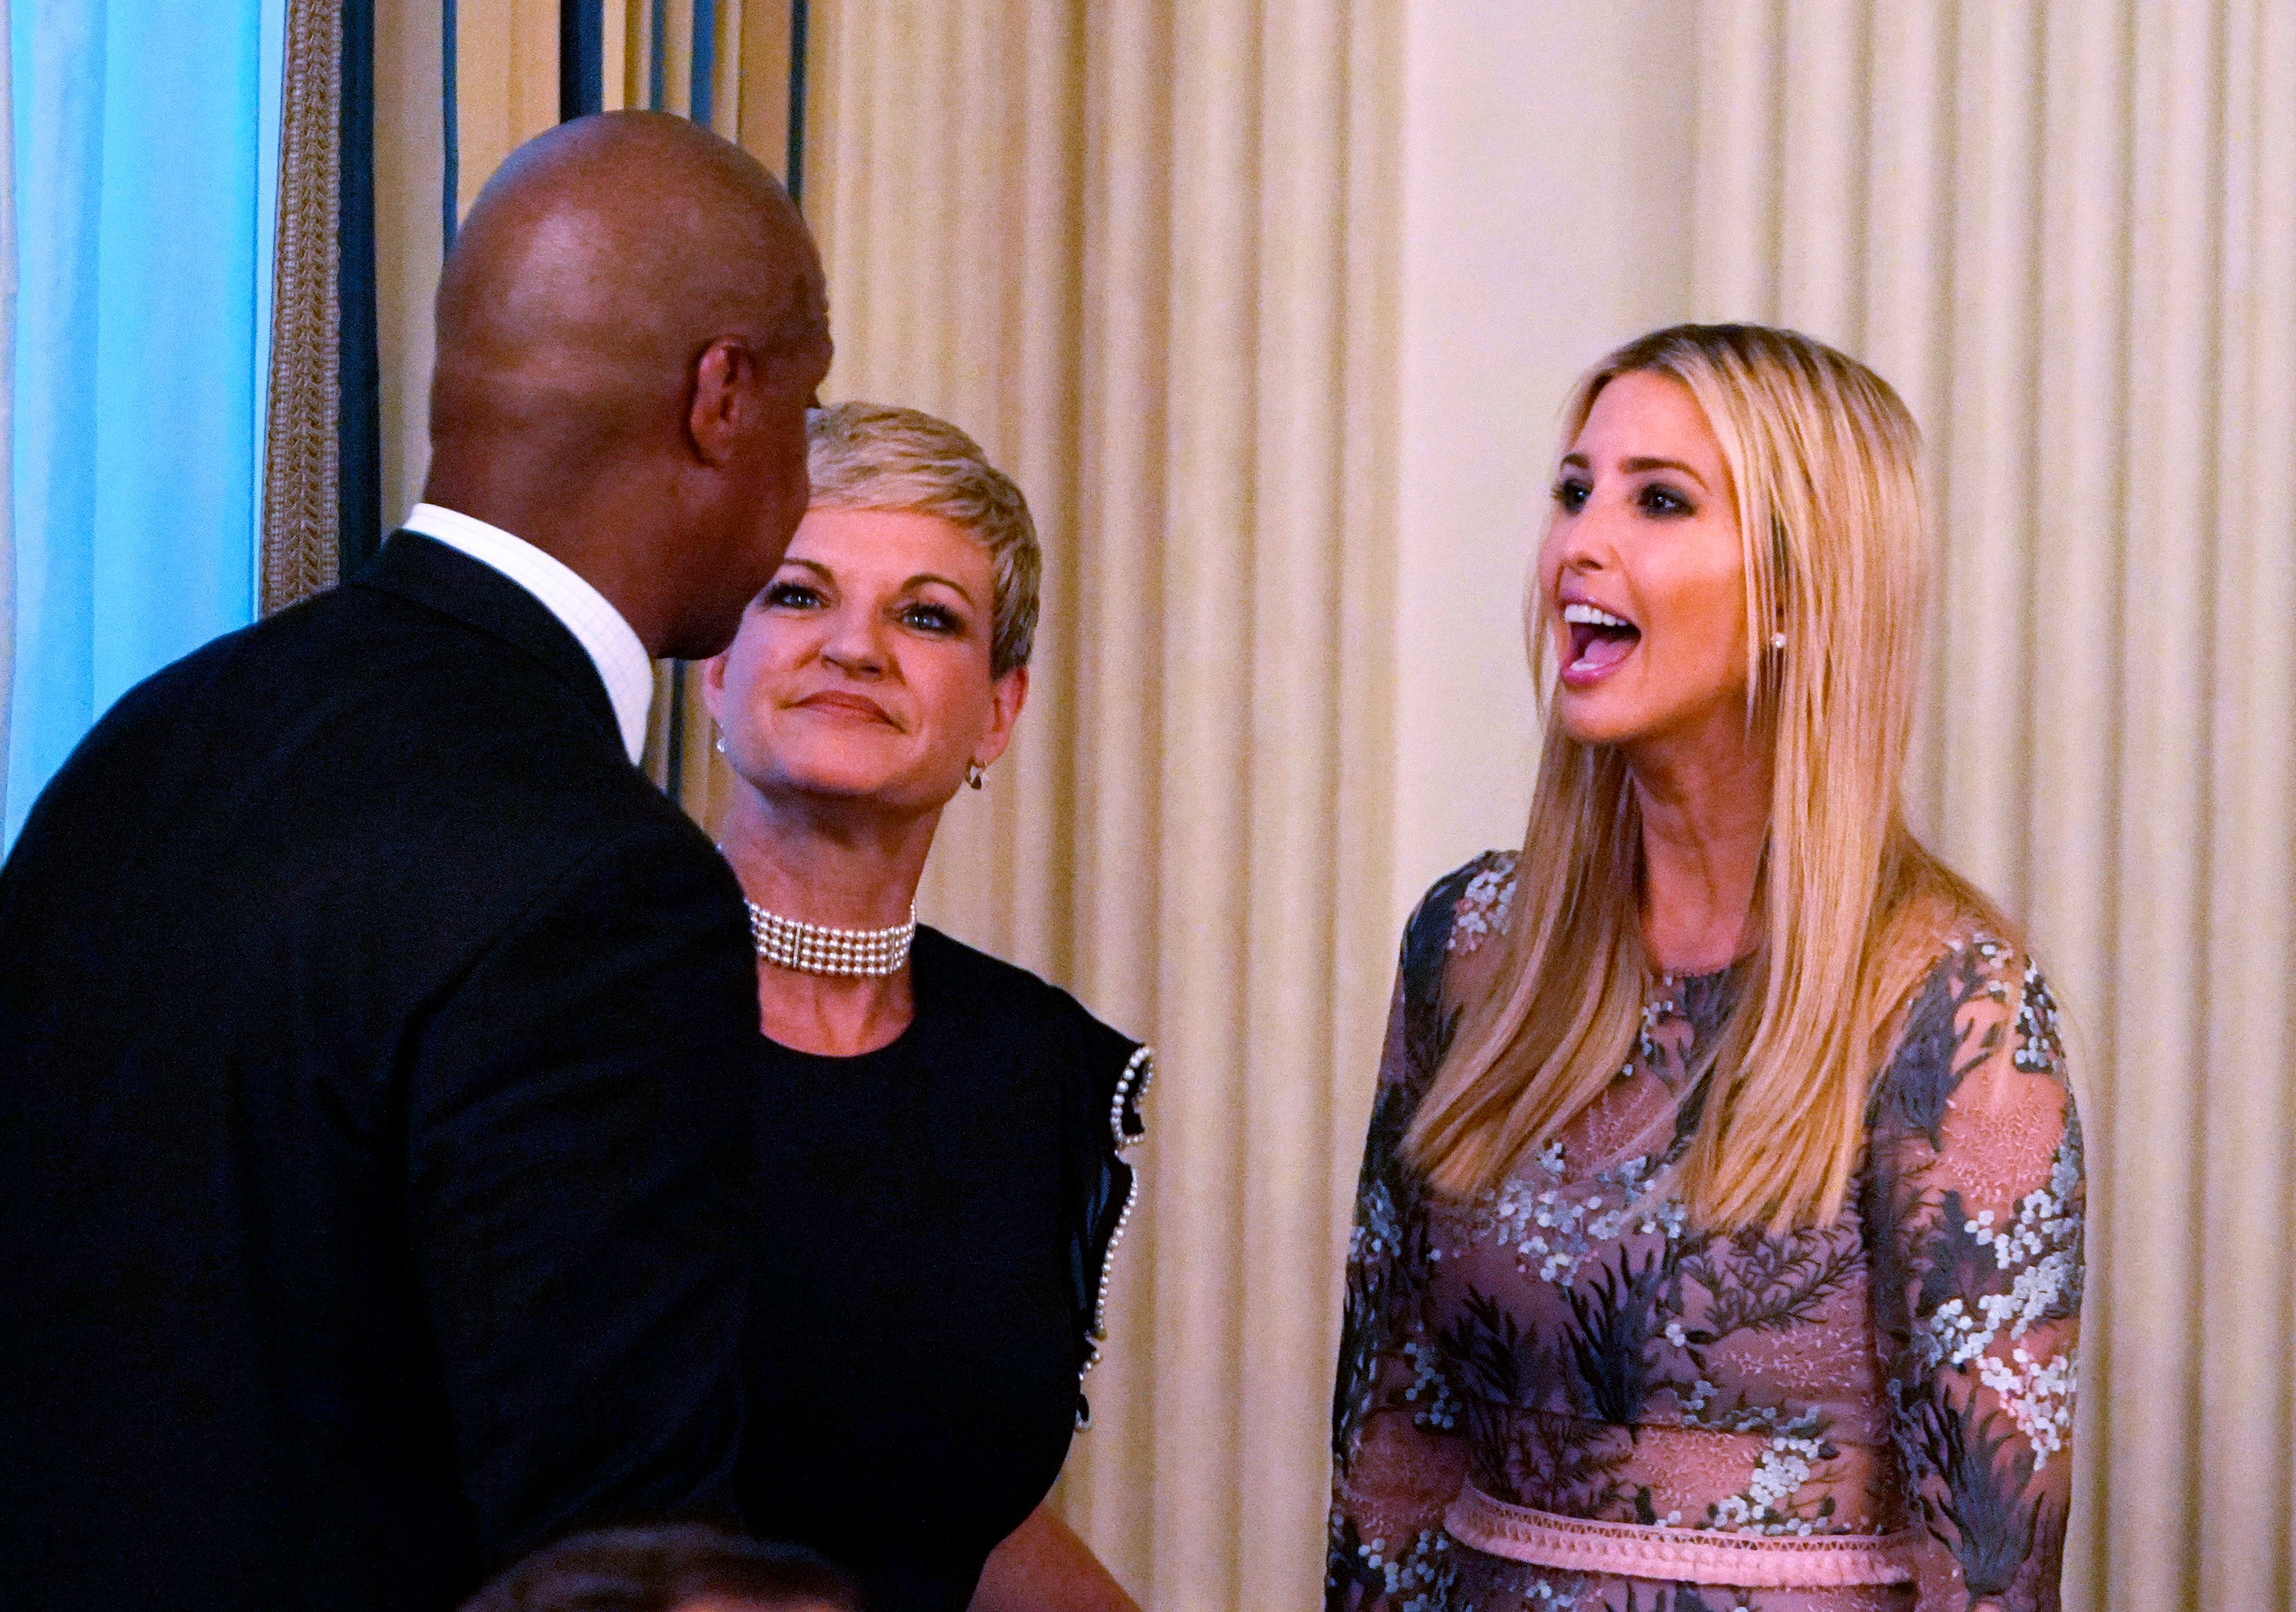 White House Advisor Ivanka Trump is seen at an event honoring Evangelical leadership in the State Dining Room of the White House on August 27, 2018 in Washington, DC. (Photo by MANDEL NGAN / AFP)        (Photo credit should read MANDEL NGAN/AFP/Getty Images)